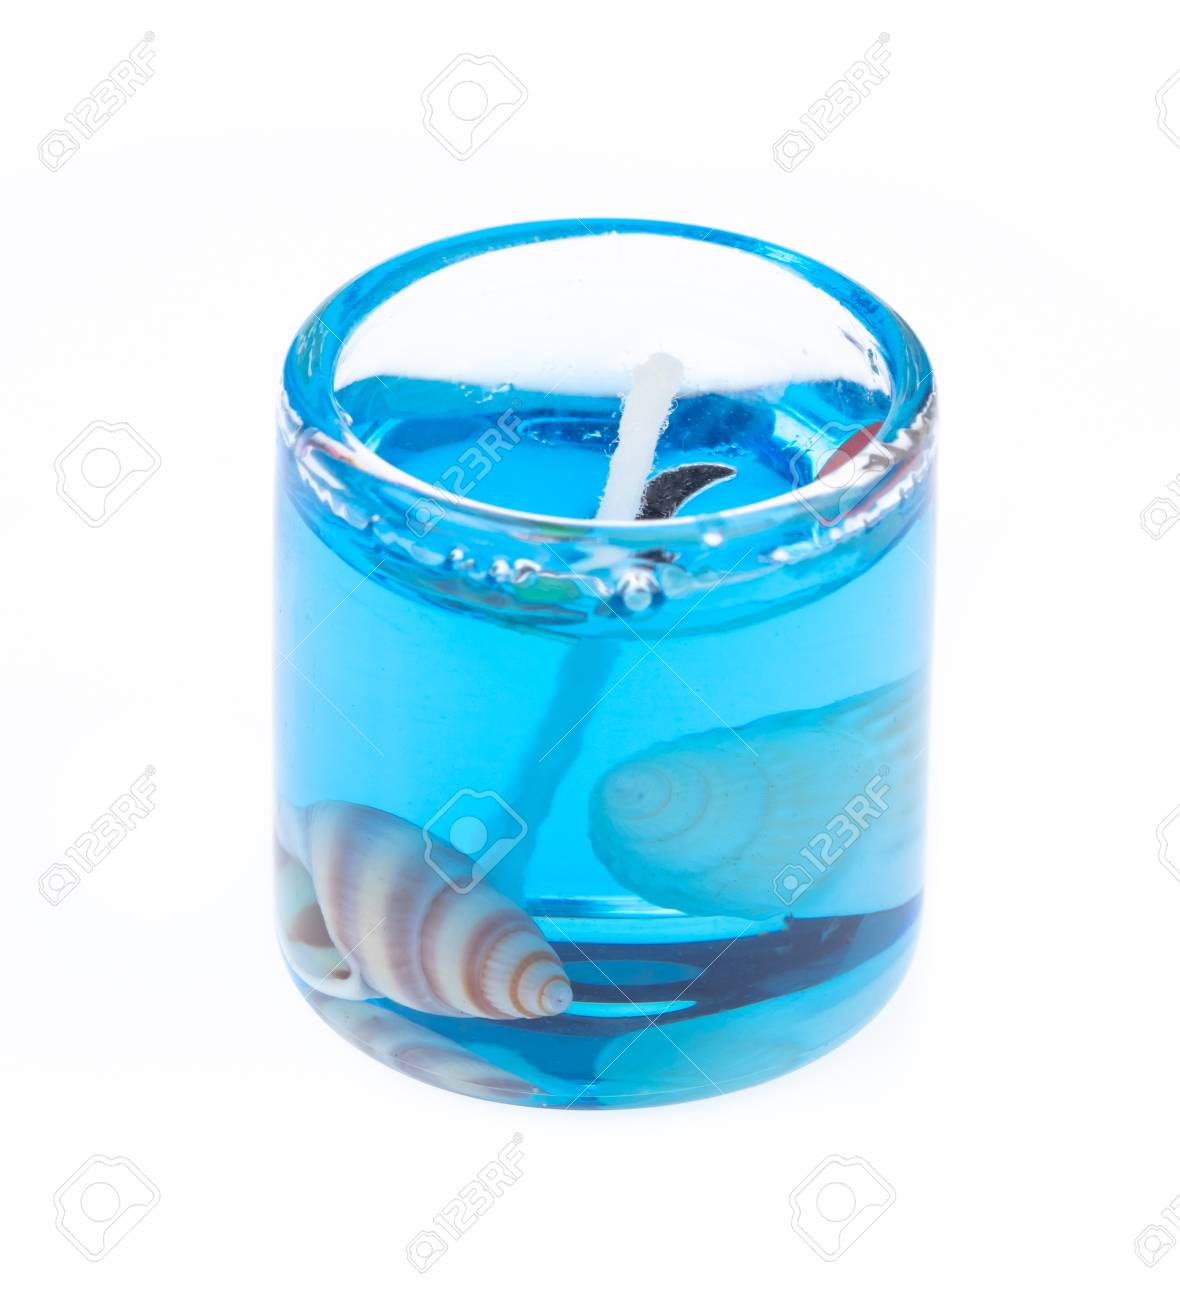 Gel candle in glass isolated on white background